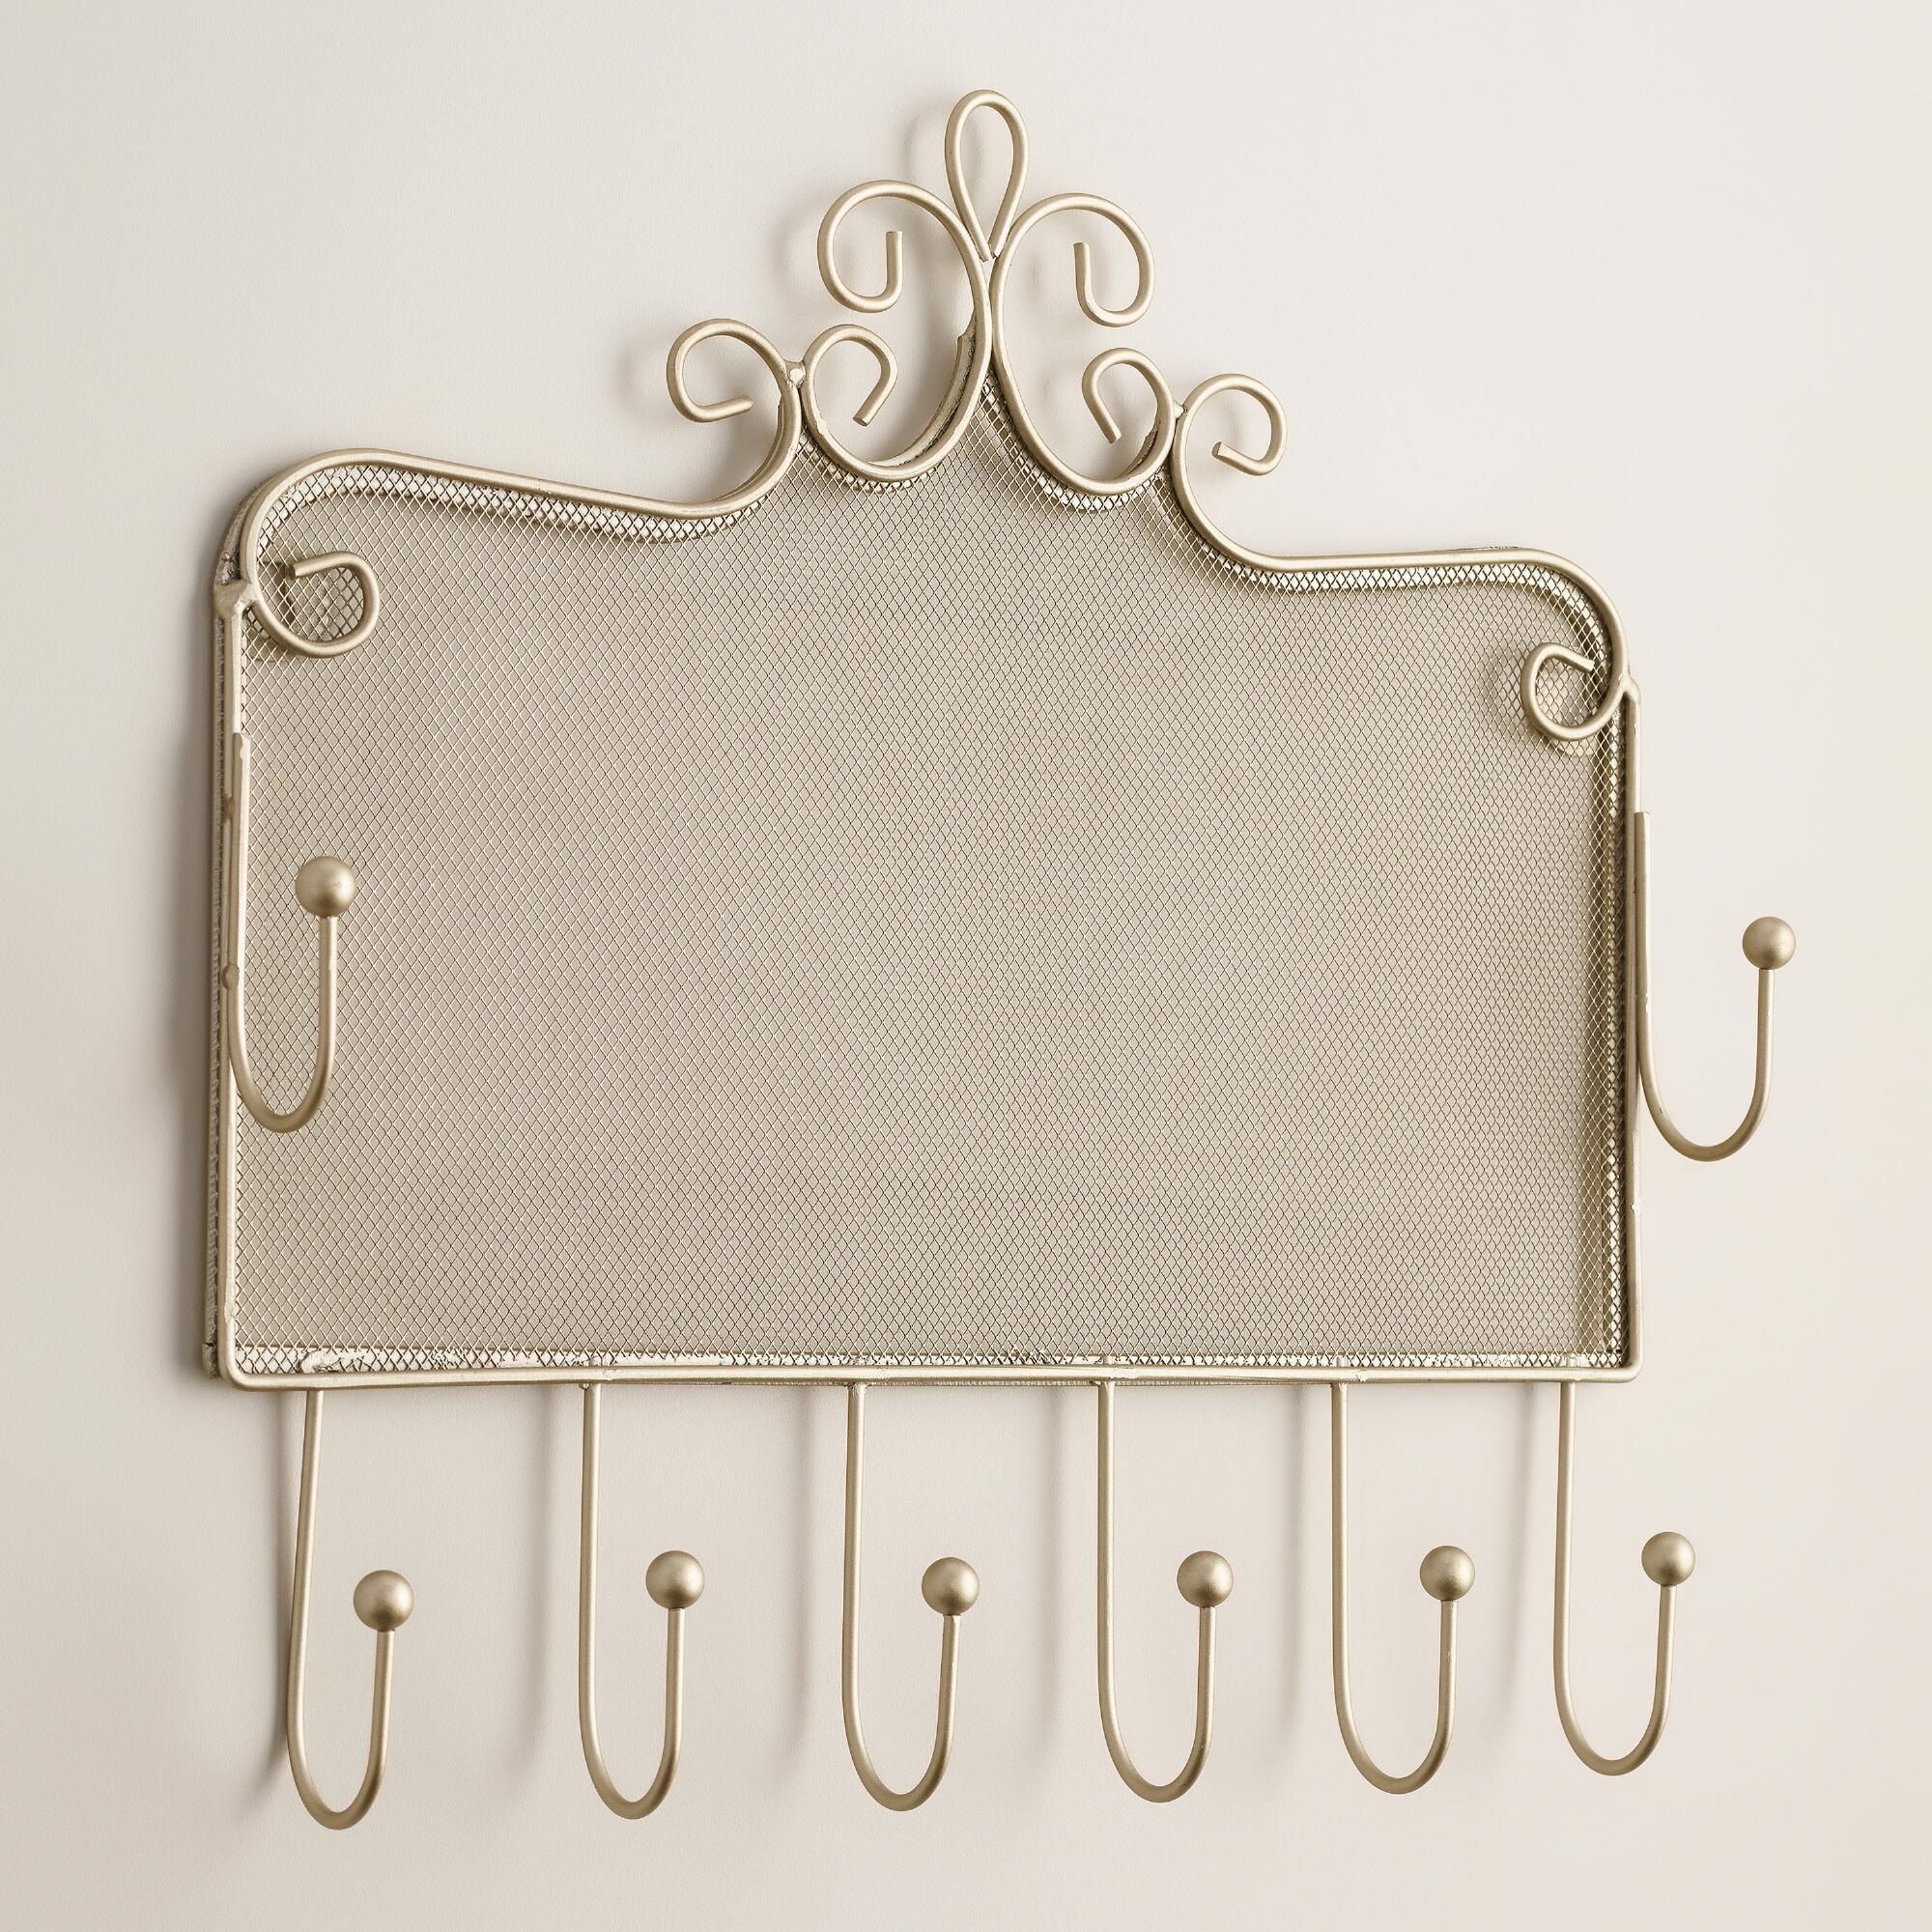 Pewter Wall Jewelry Holder with Hooks - Metal by World Market